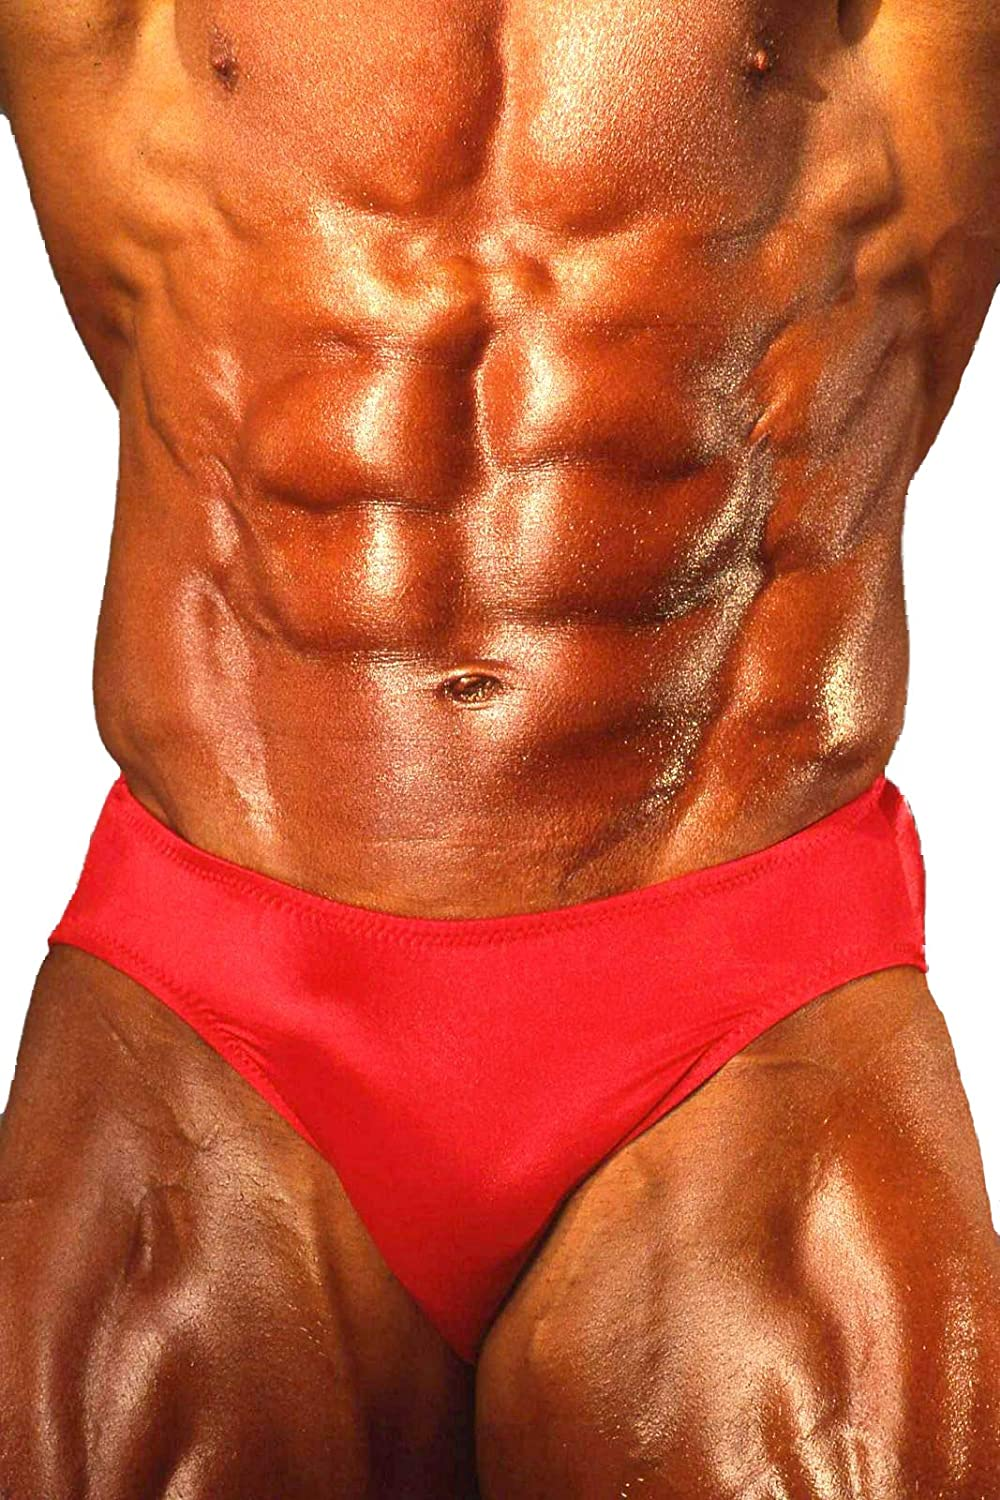 Andreas Cahling Bodybuilding Physique Classic Posing Trunks Swim Suit Briefs PS03